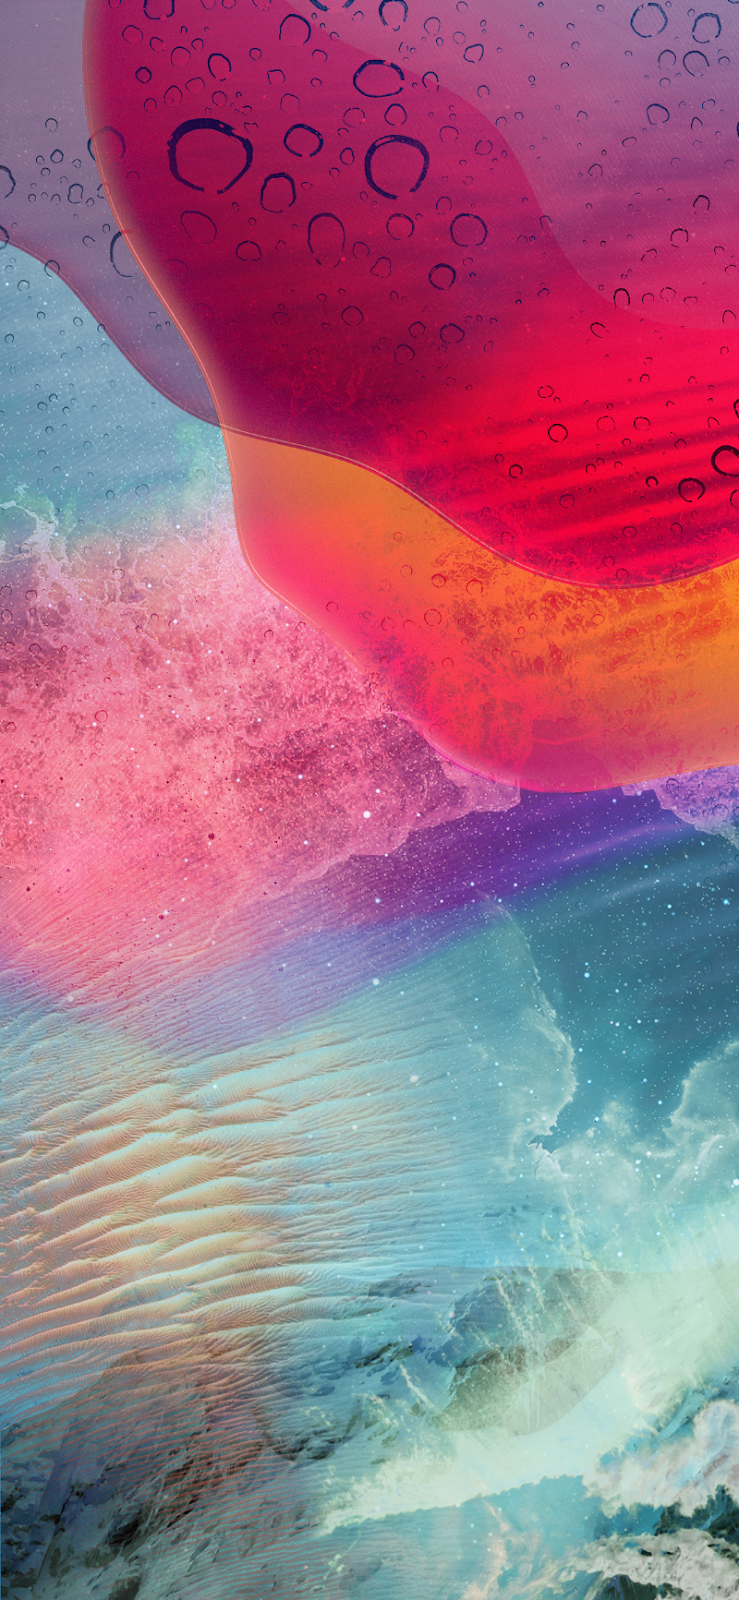 Download Every Mac Wallpaper In One Image & Every iOS